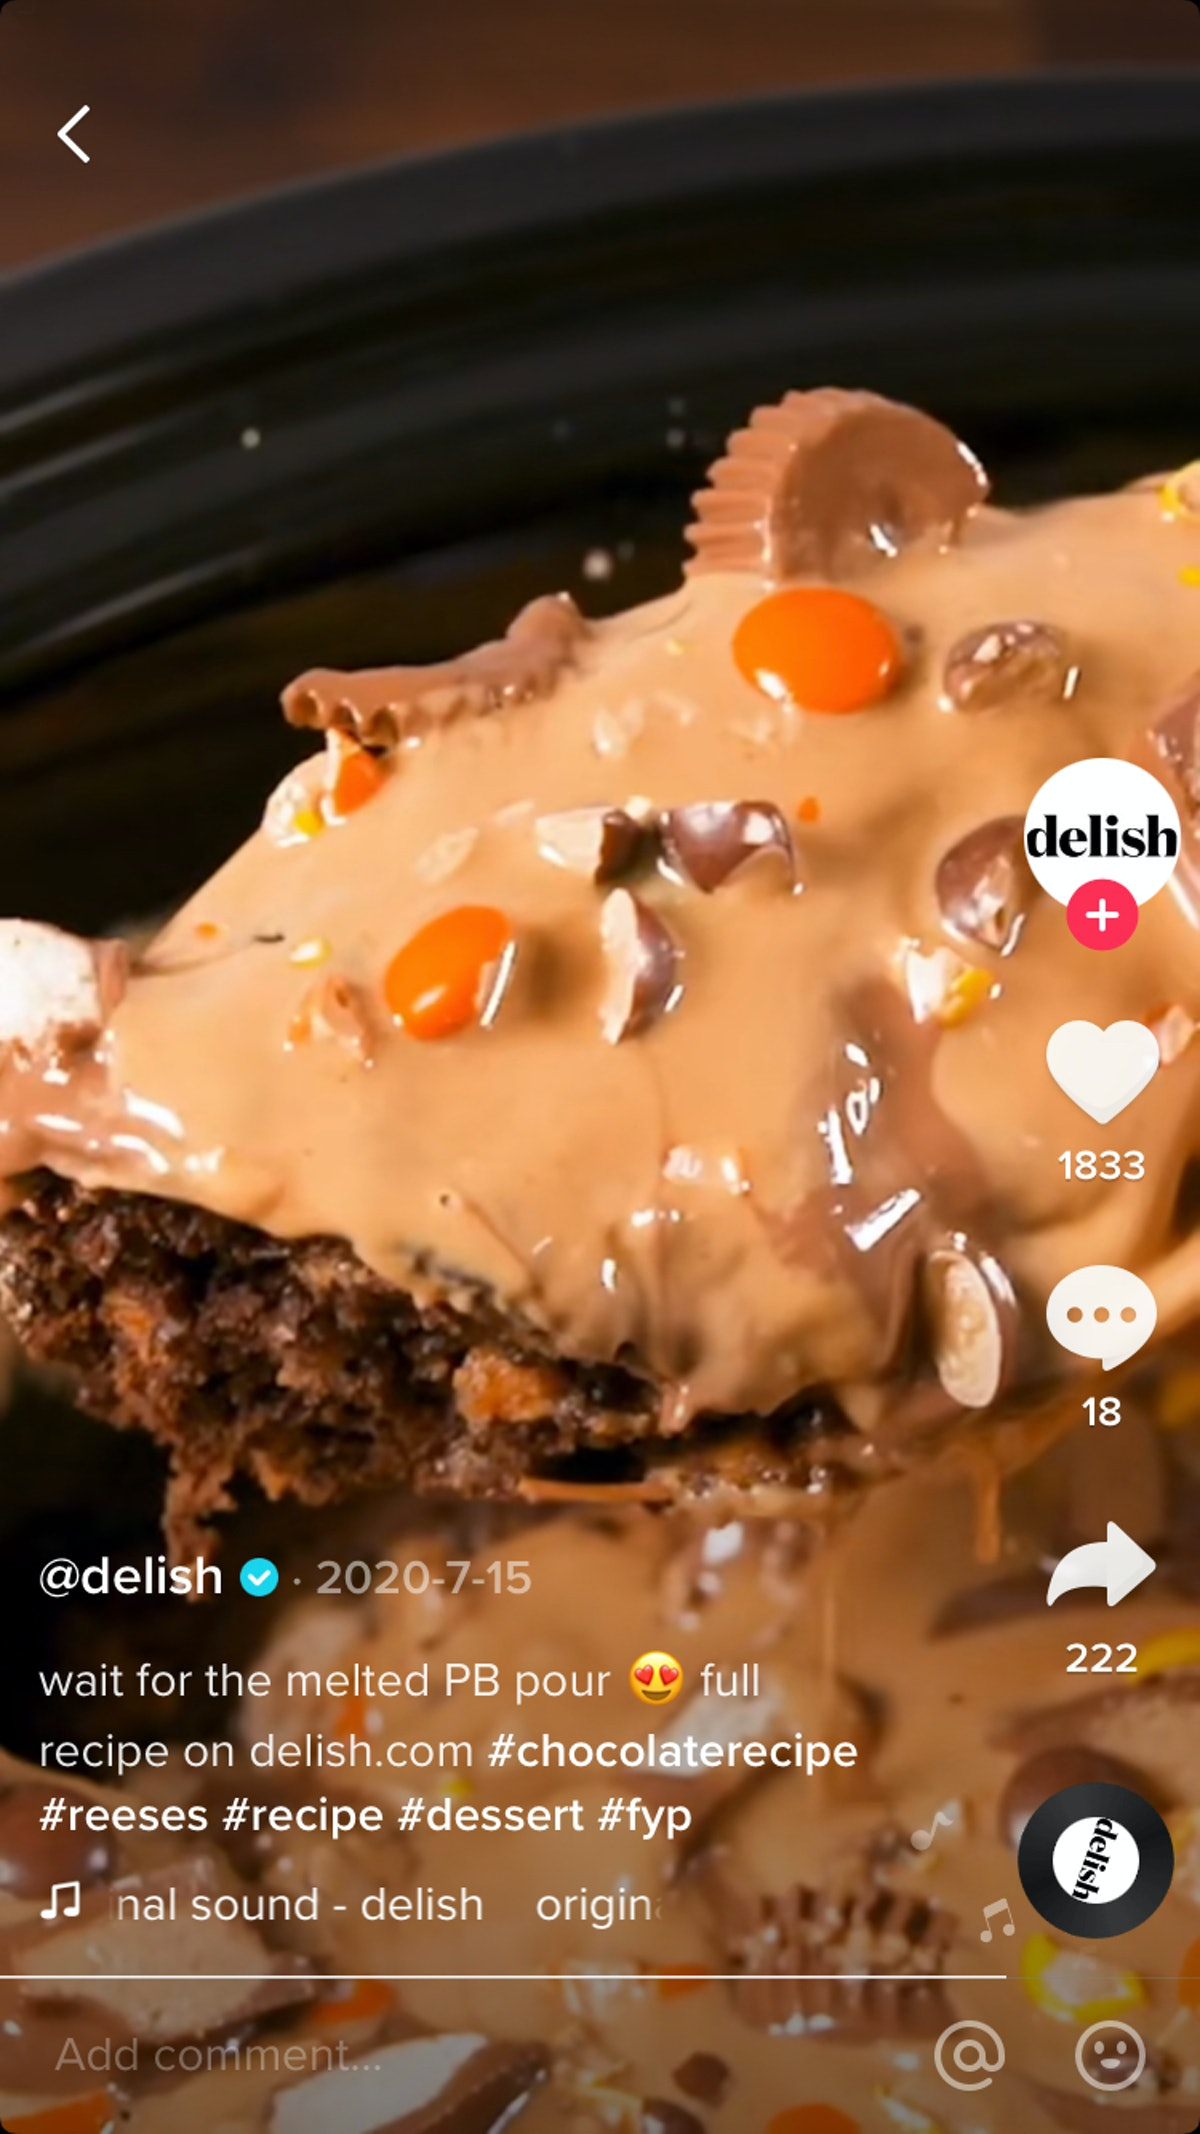 TikToker @delish shares a recipe using Reese's Peanut Butter Cups.